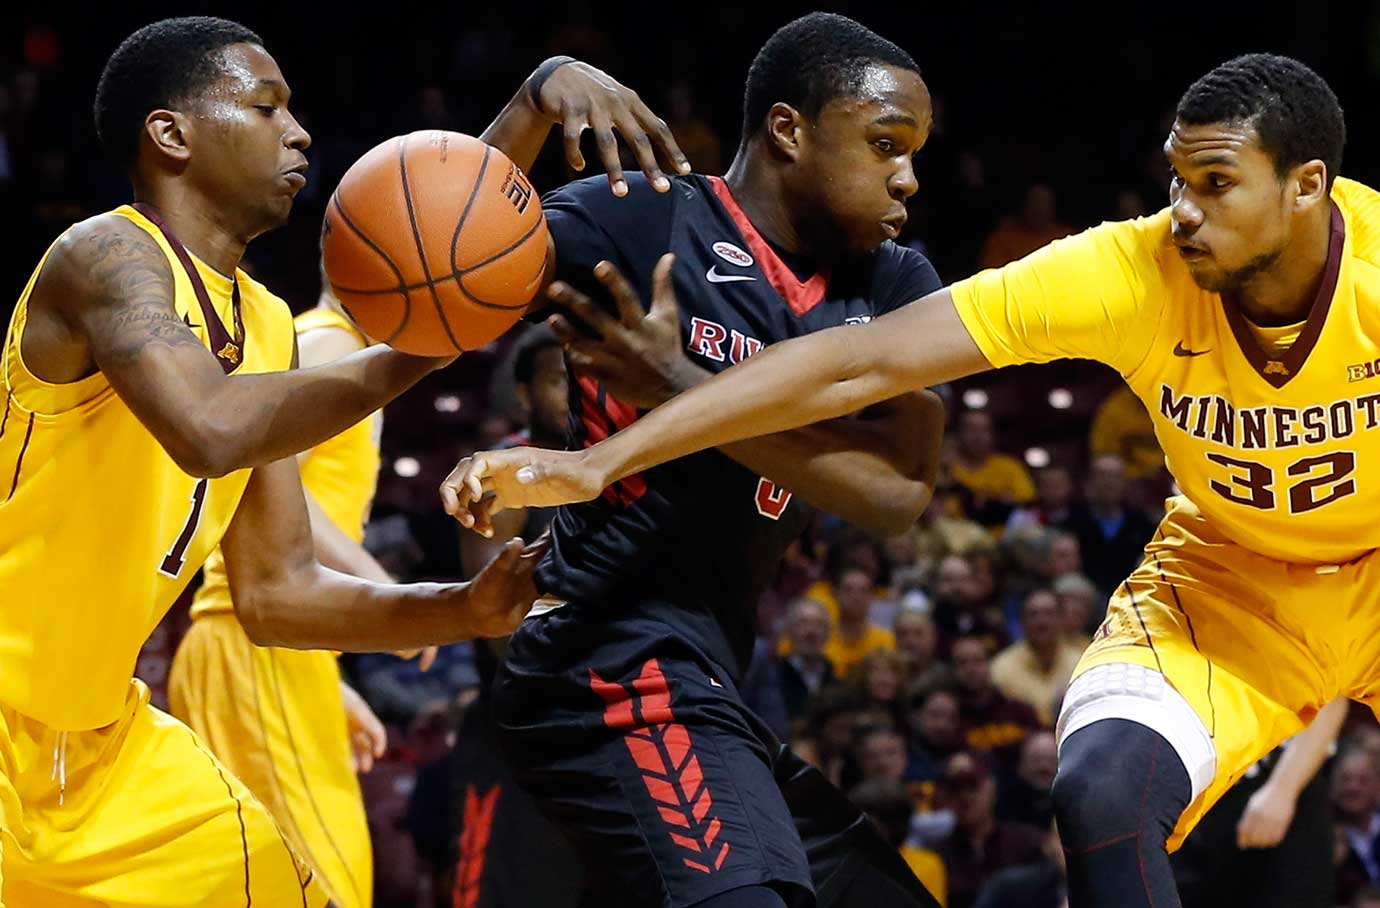 Mike Williams of Rutgers loses the ball as Minnesota's Dupree McBrayer, left, and Ahmad Gilbert Jr. defend.